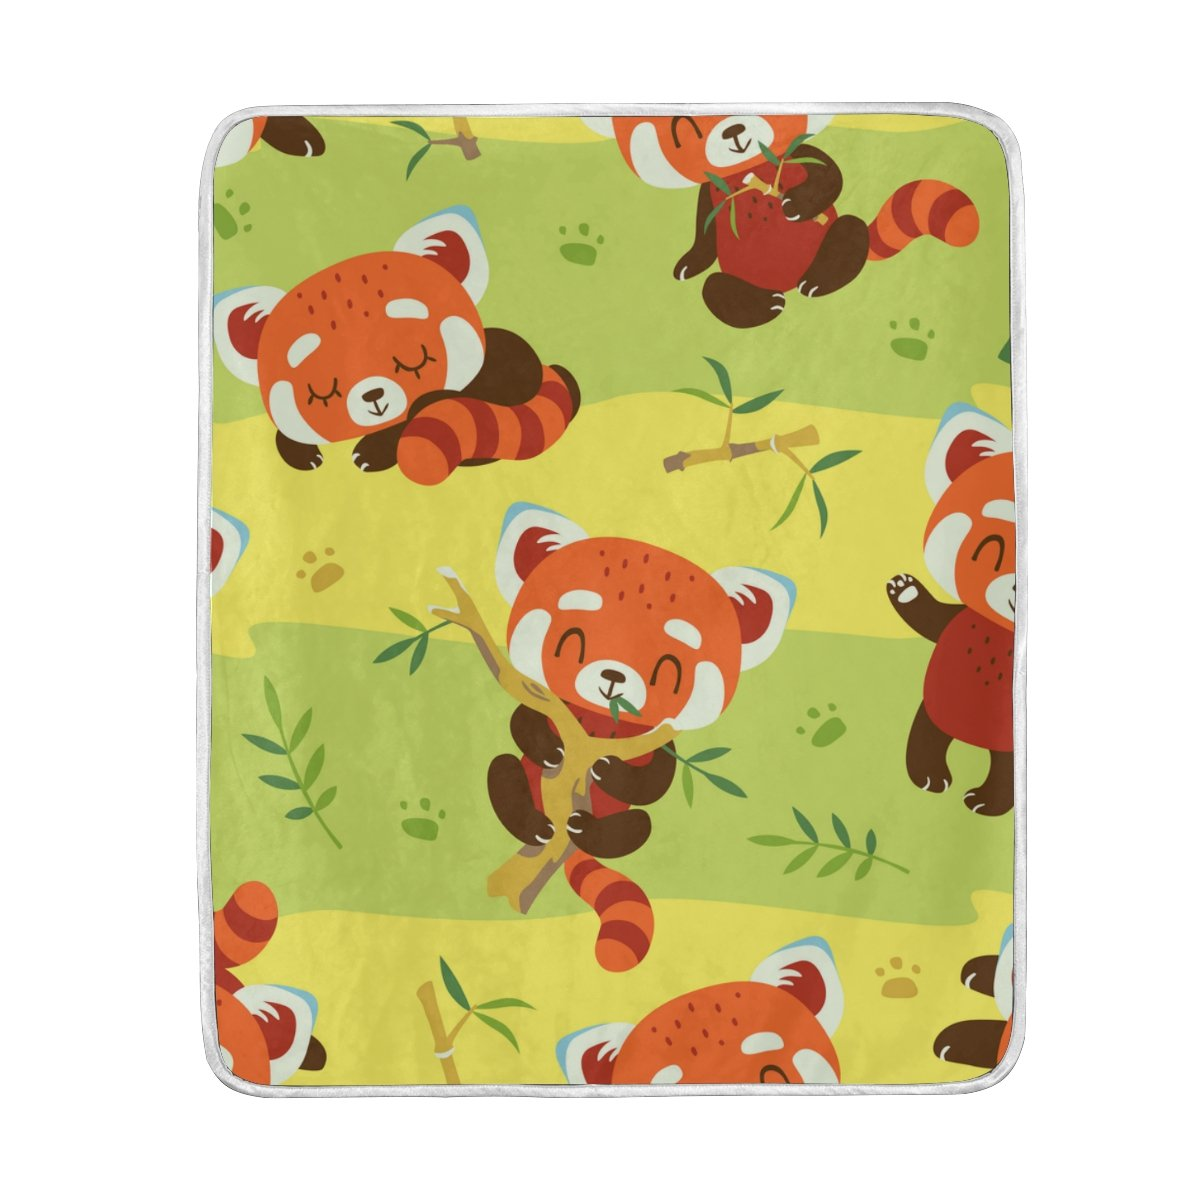 My Little Nest Warm Throw Blanket Cartoon Red Panda Green Lightweight MicrofiberSoft Blanket Everyday Use for Bed Couch Sofa 50'' x 60''